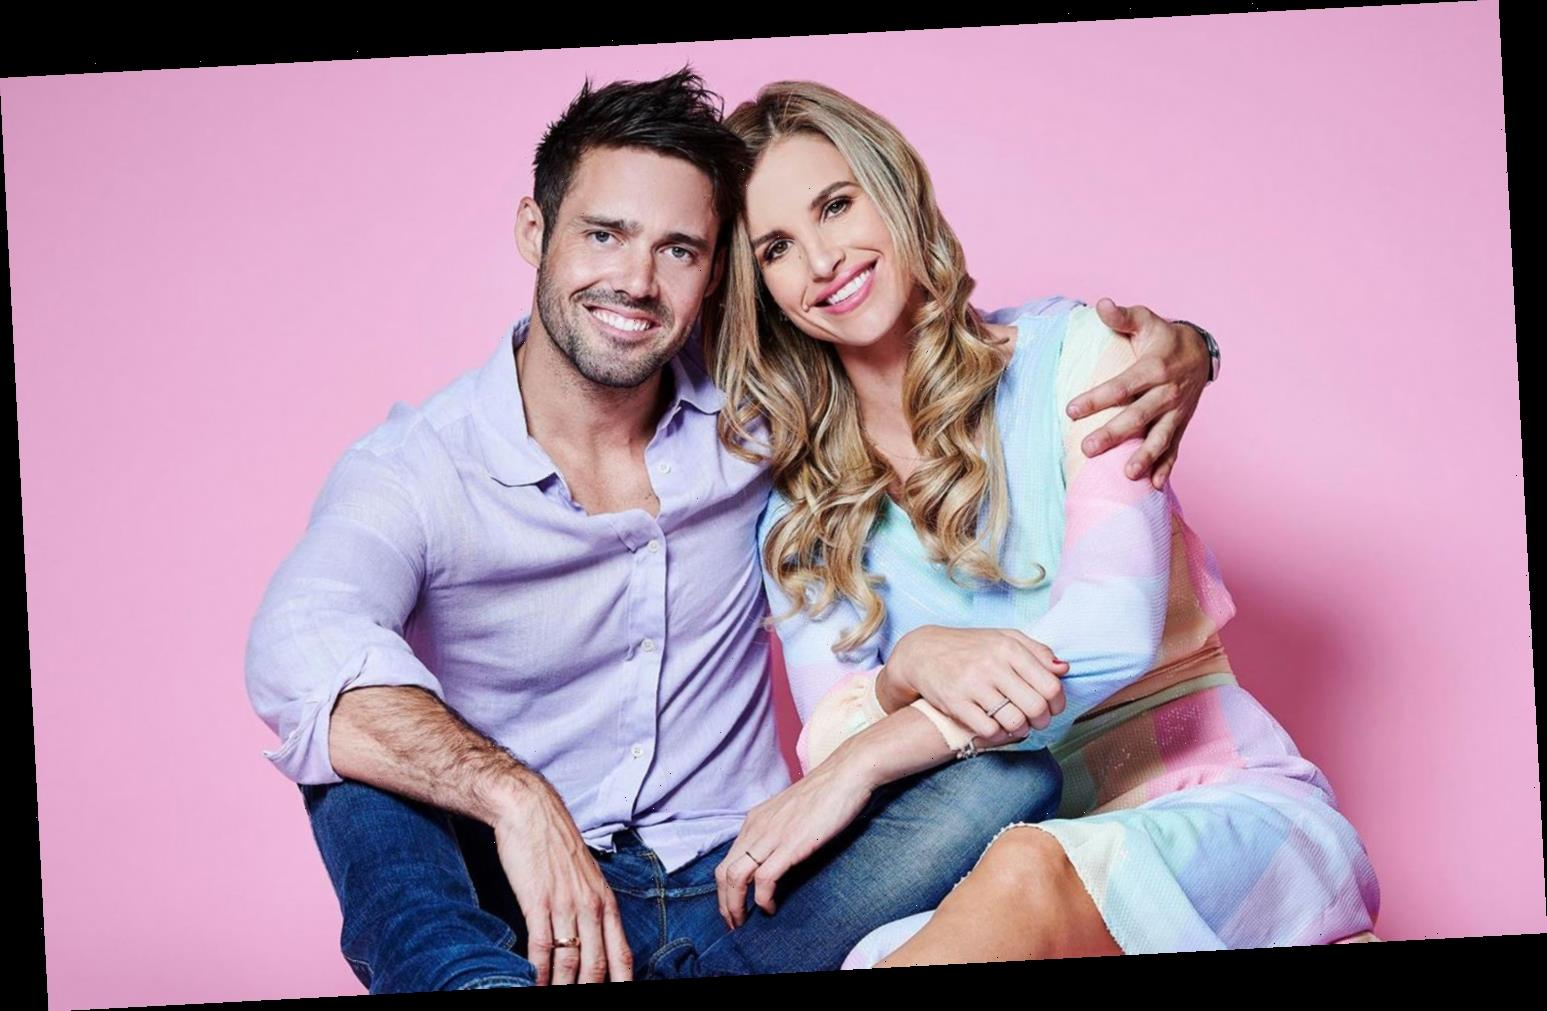 How Partying TV Star Spencer Matthews Turned Life Around to Became 'No and Low' Spirits Creator